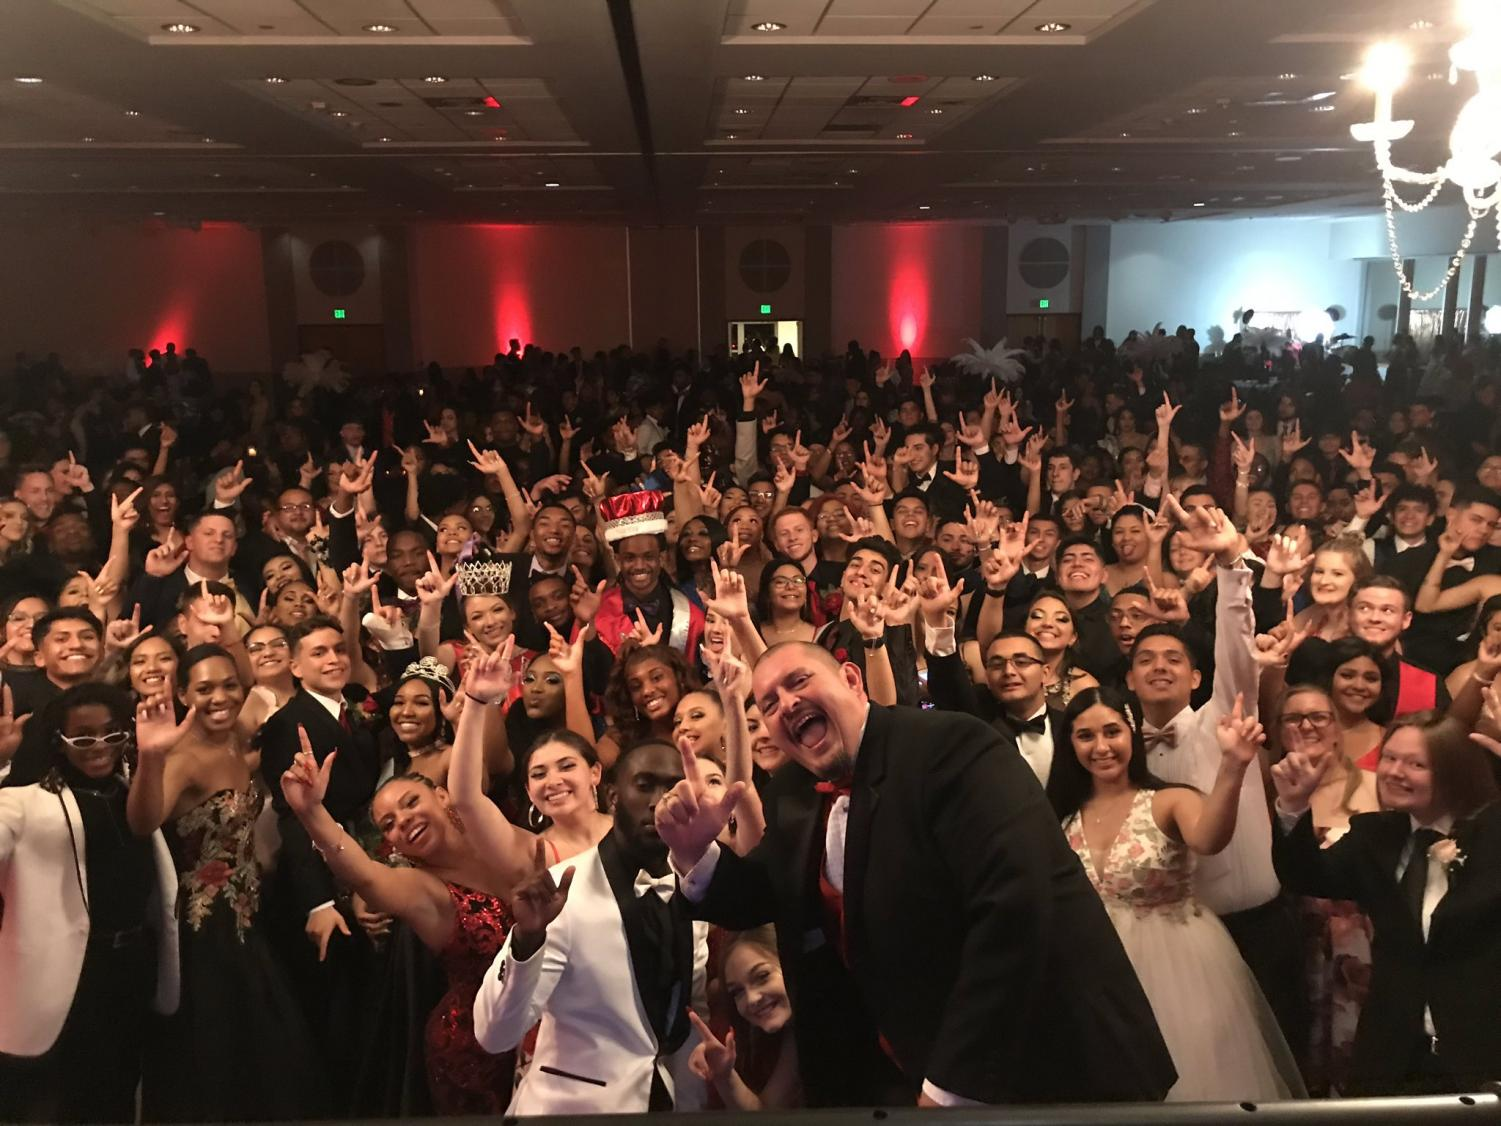 Mr. Hernandez takes a picture with the entire Prom crowd behind him. The event was held in the Rosenberg Skyroom at the University of the Incarnate Word.